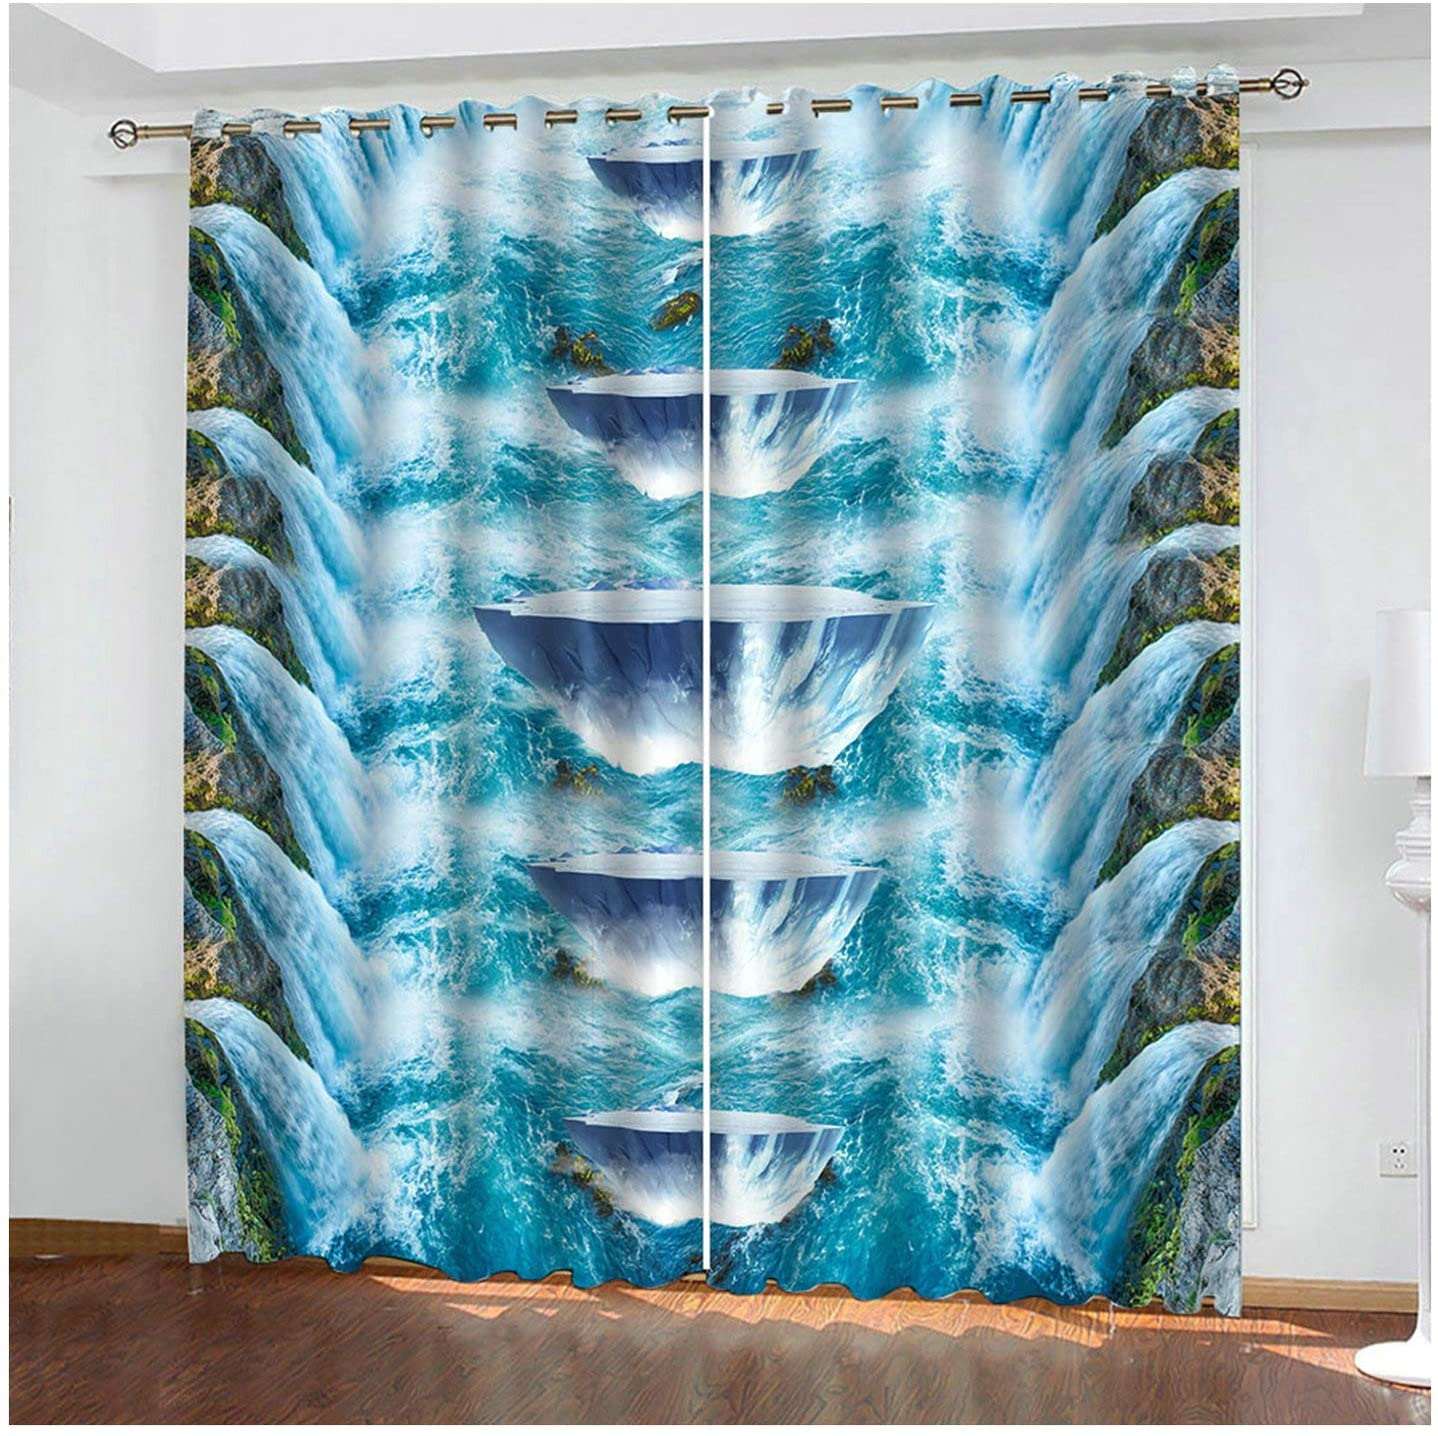 Daesar Polyester Curtains Bedroom 42 x 63 Inch Window Treatments Curtains Waterfall Darkening Curtain for Bedroom Blue Curtain for Living Room 2 Panels